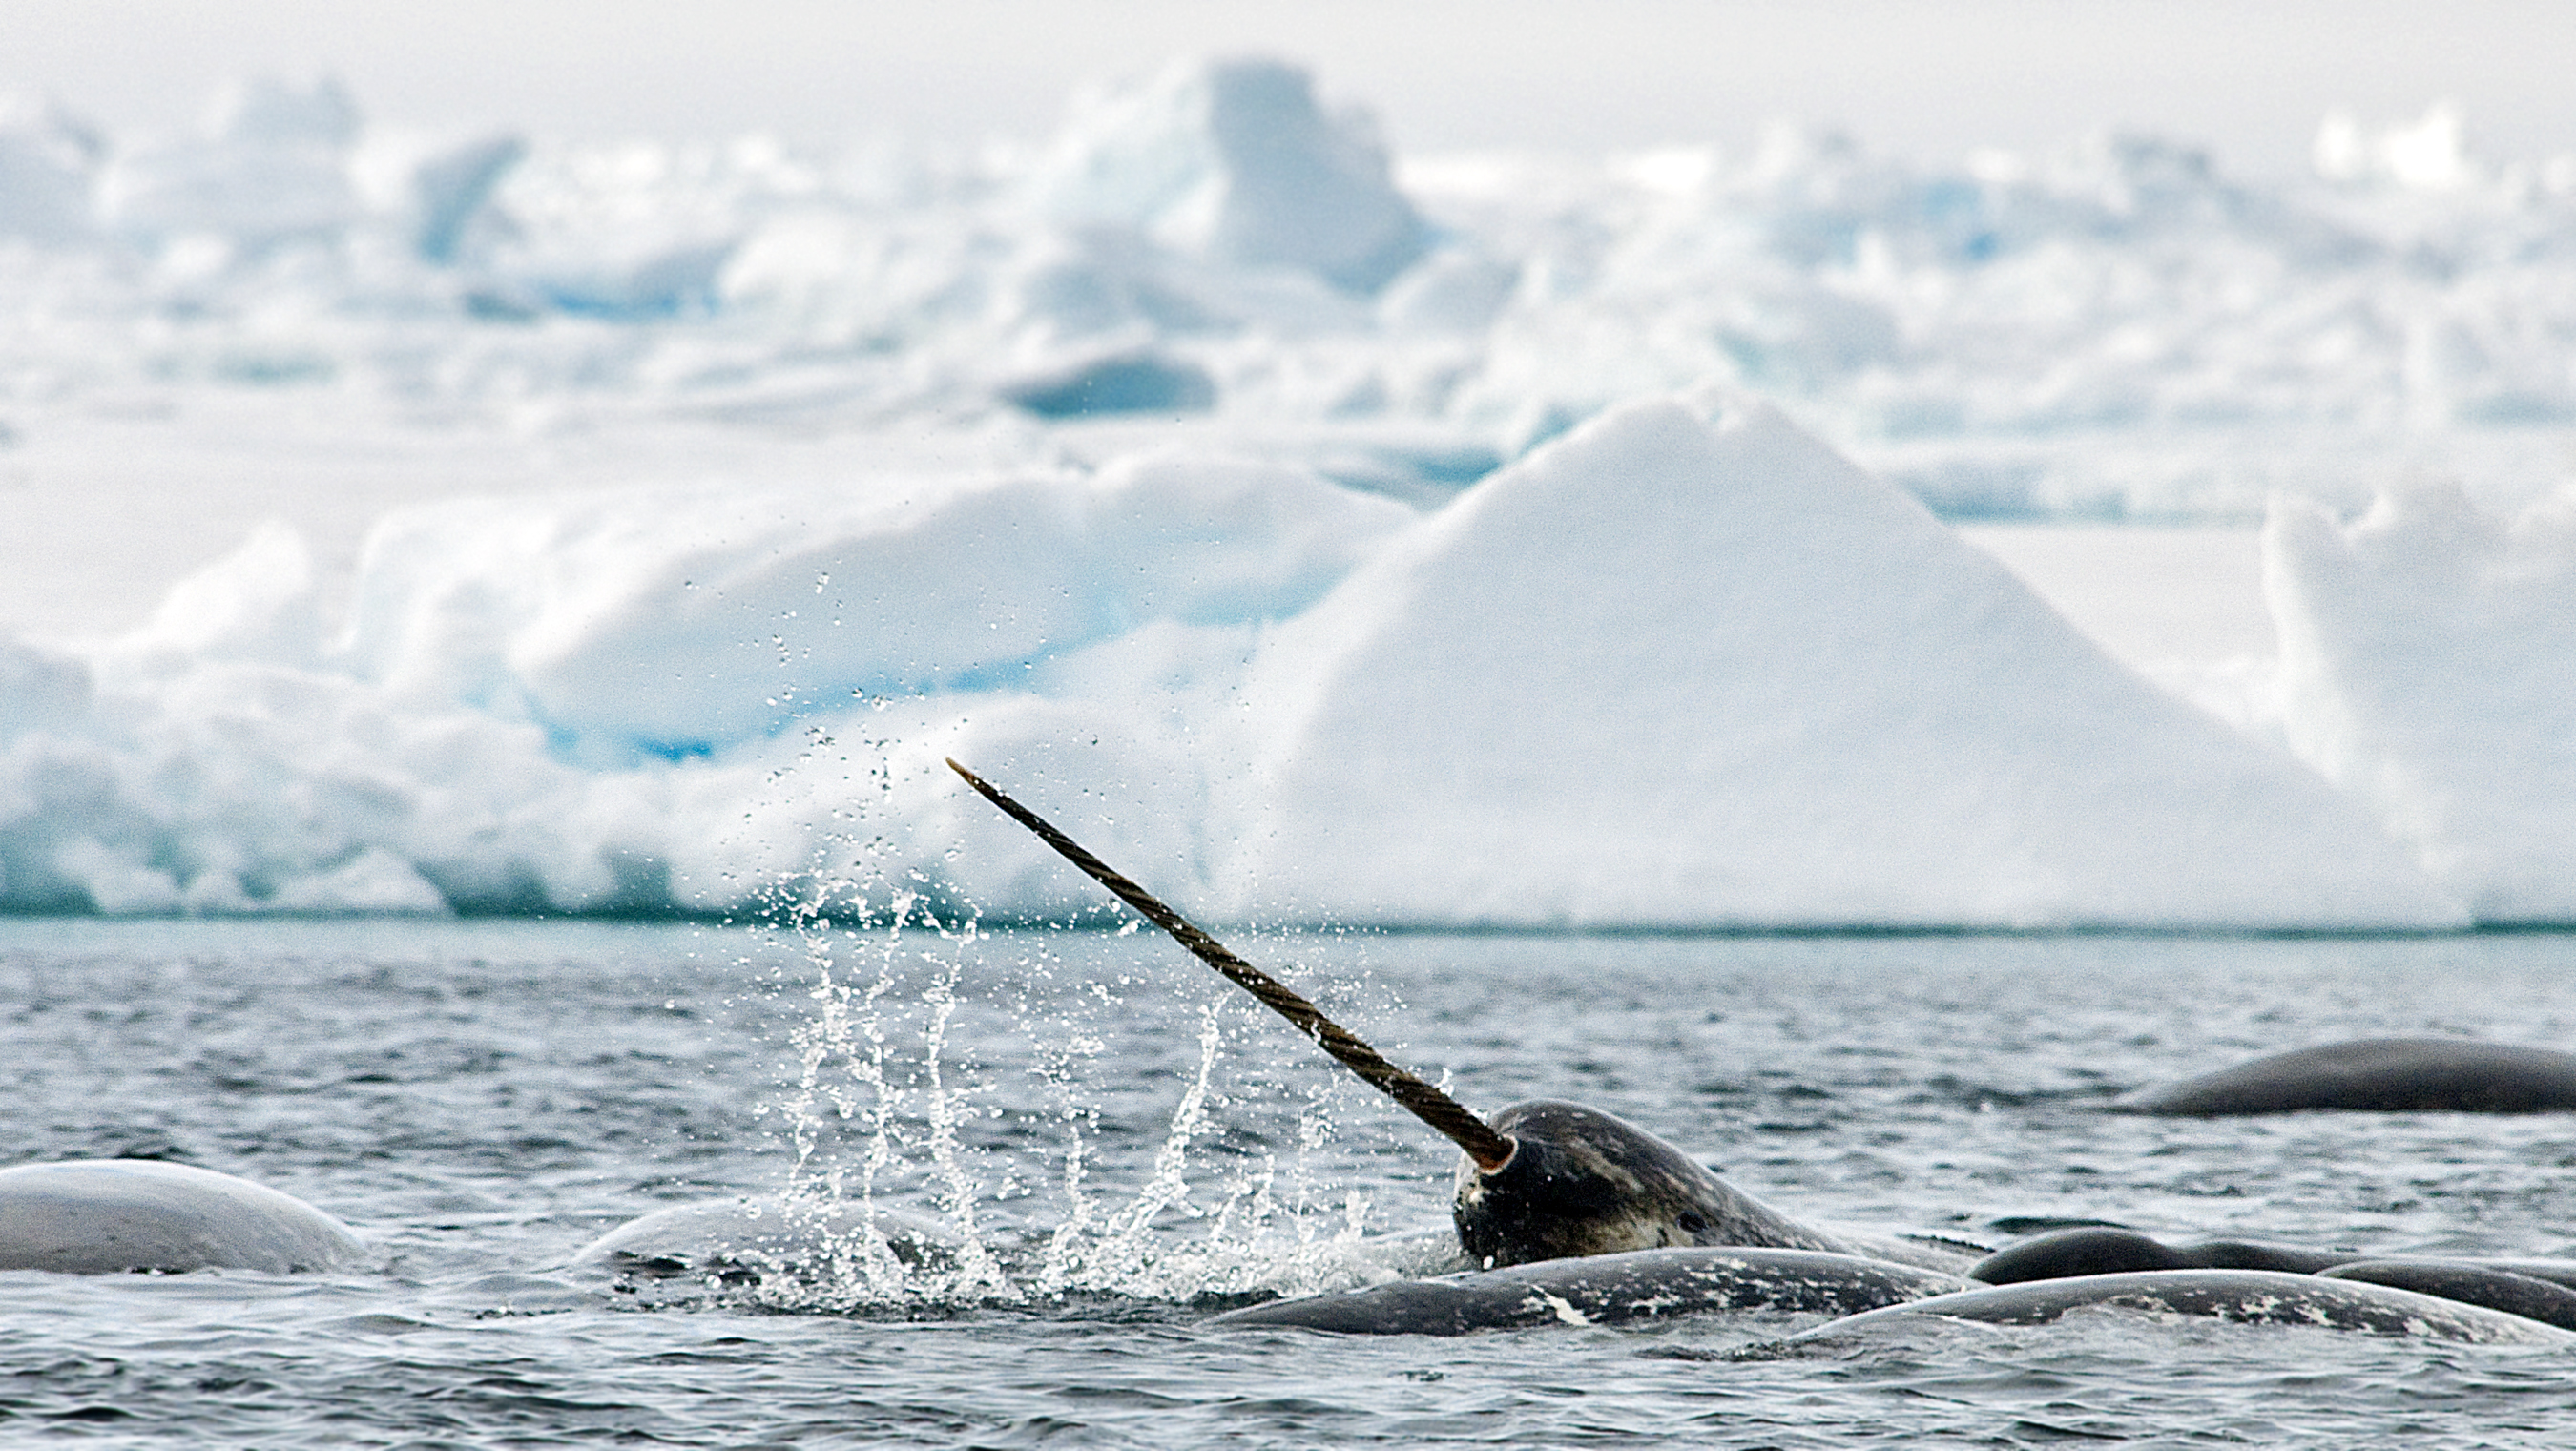 Narwhal_Tusk_AB 1571 by Michelle Valberg-1